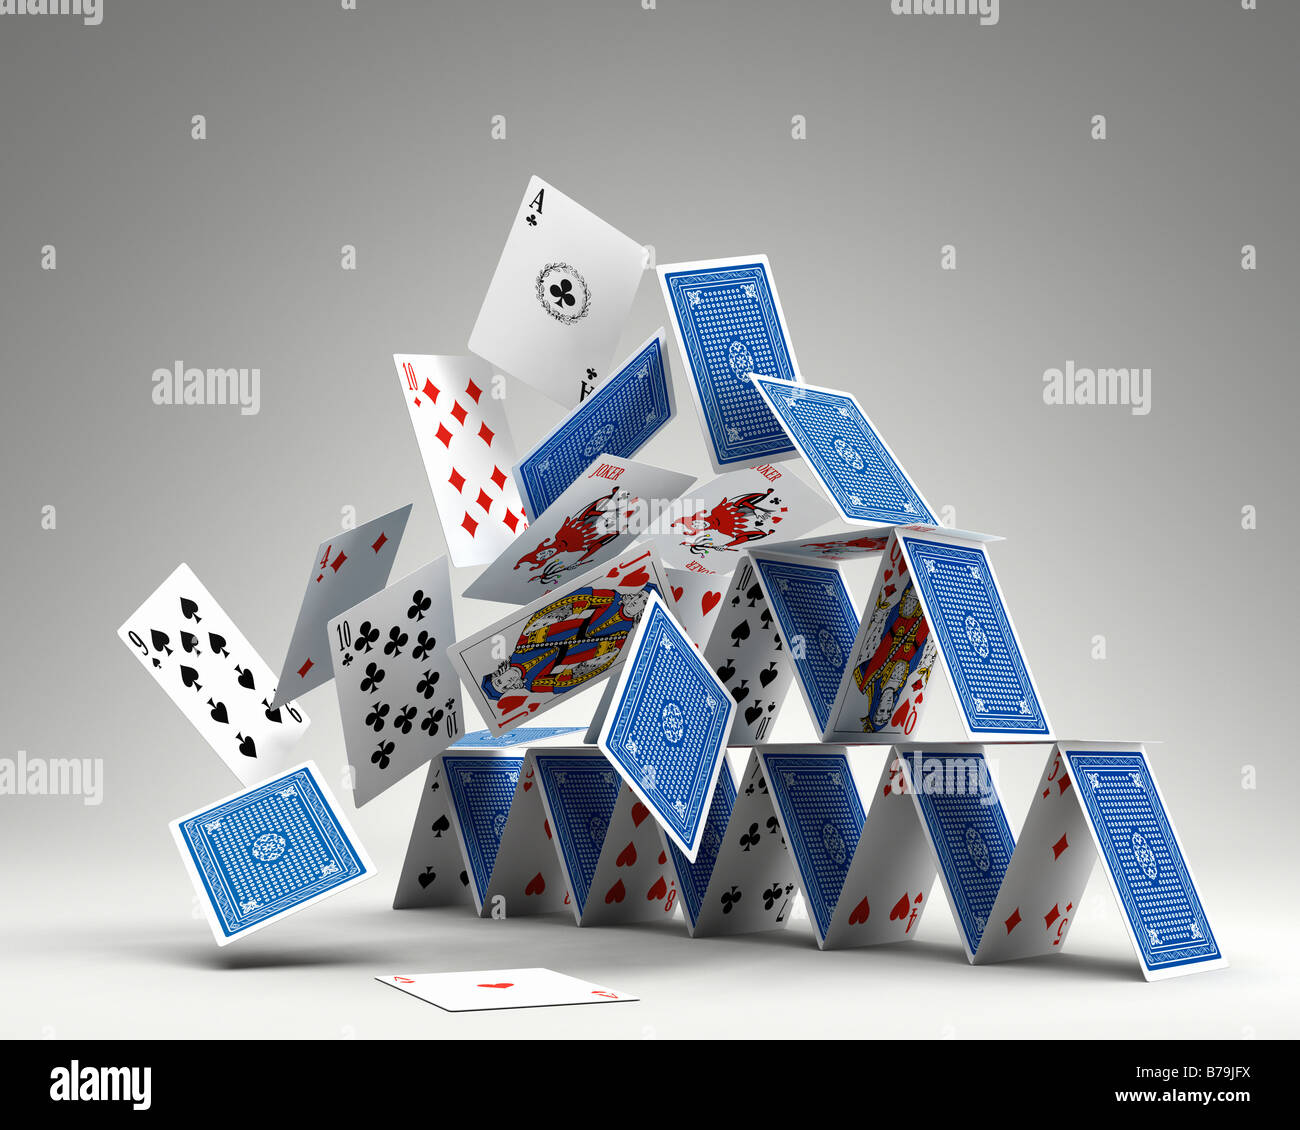 Image result for images of house of cards collapsing